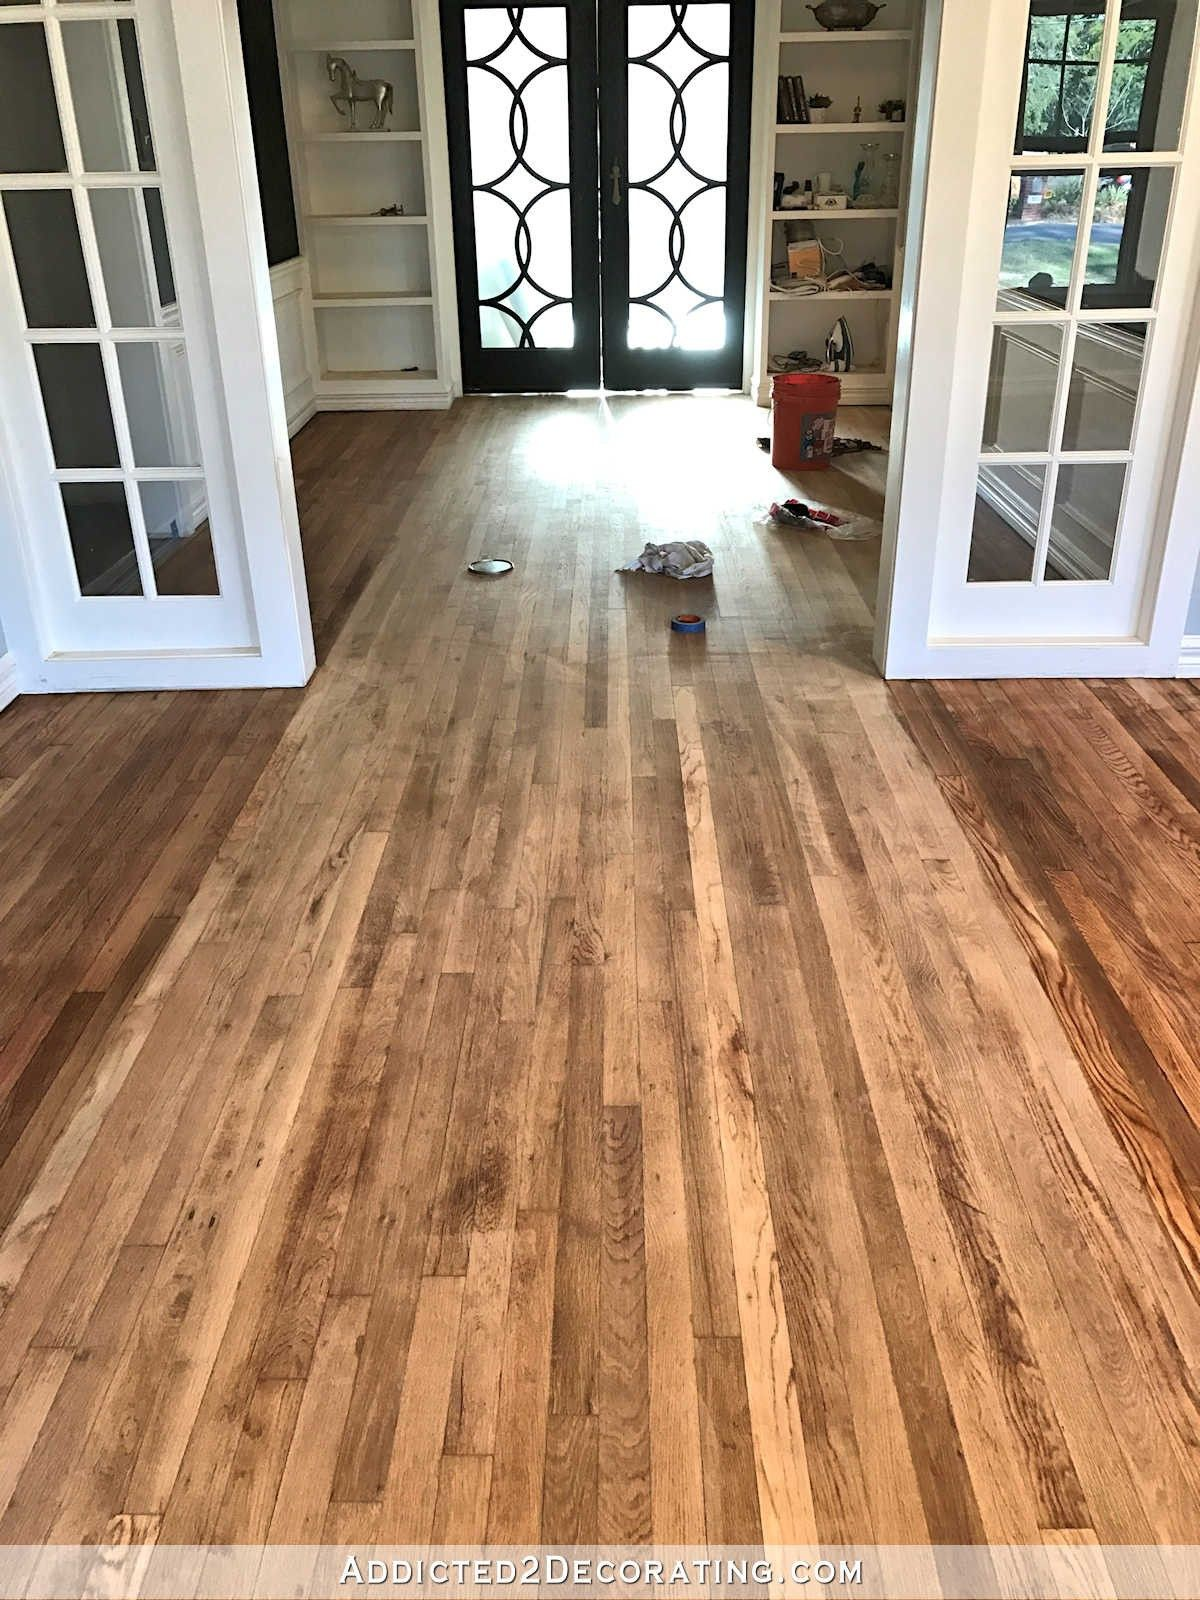 23 Fabulous Estimated Cost Of Installing Hardwood Floors